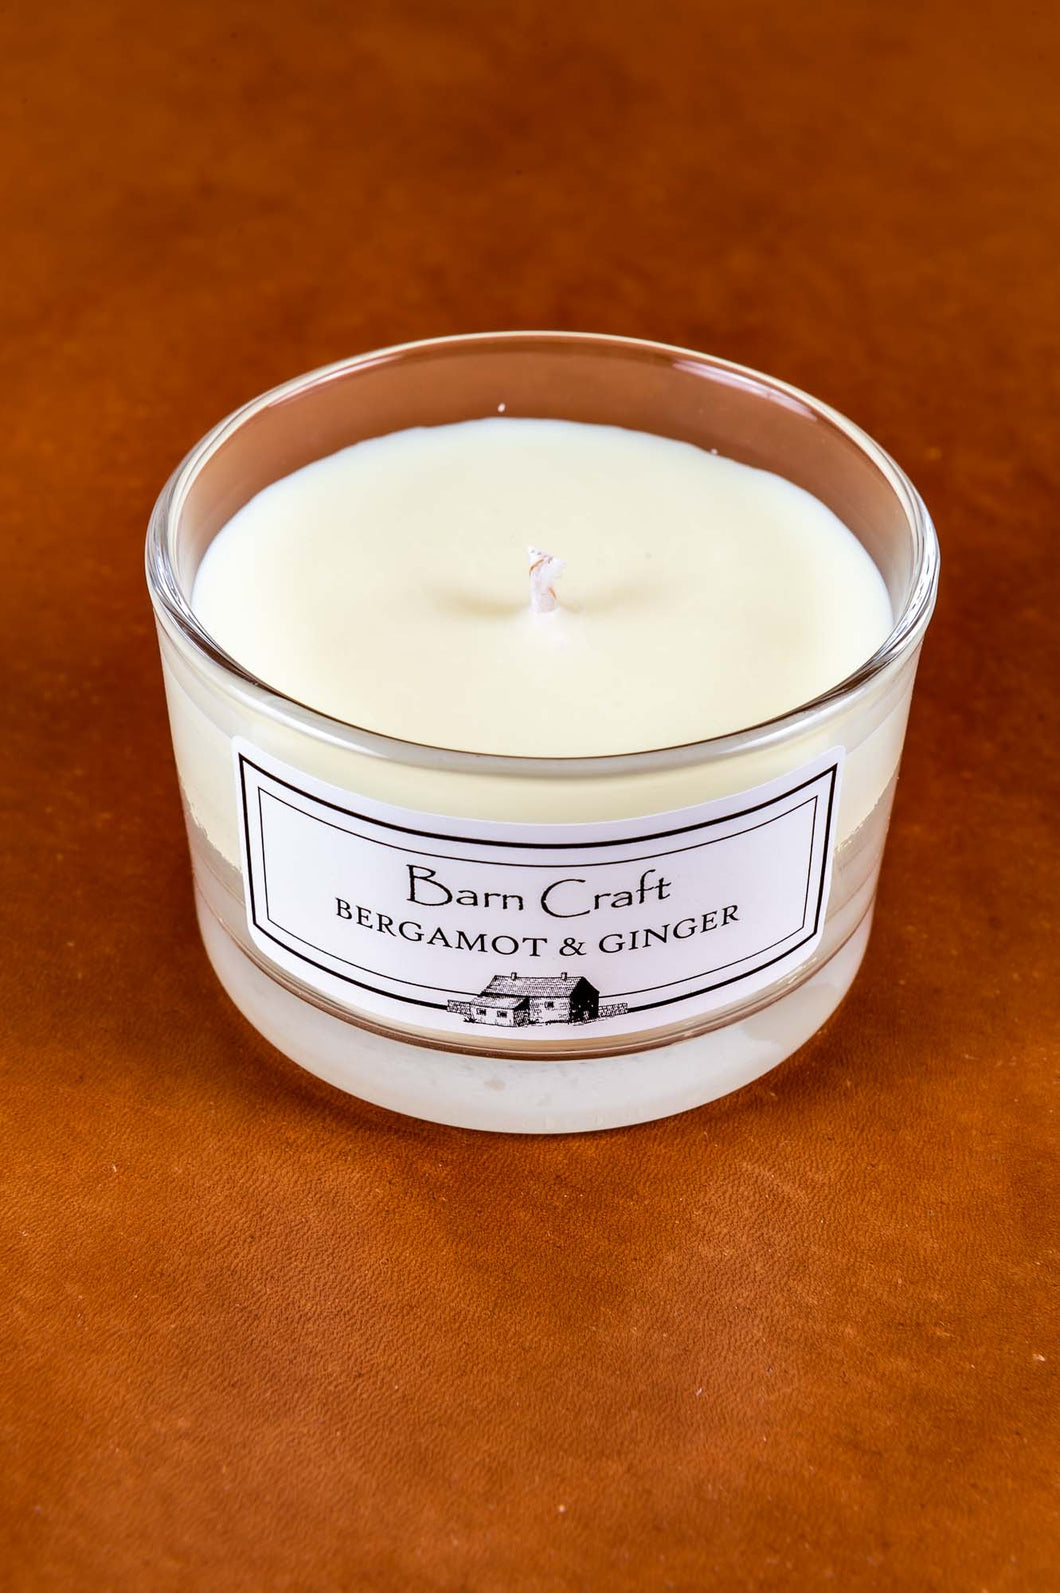 Bergamot & Ginger scented soy wax candle